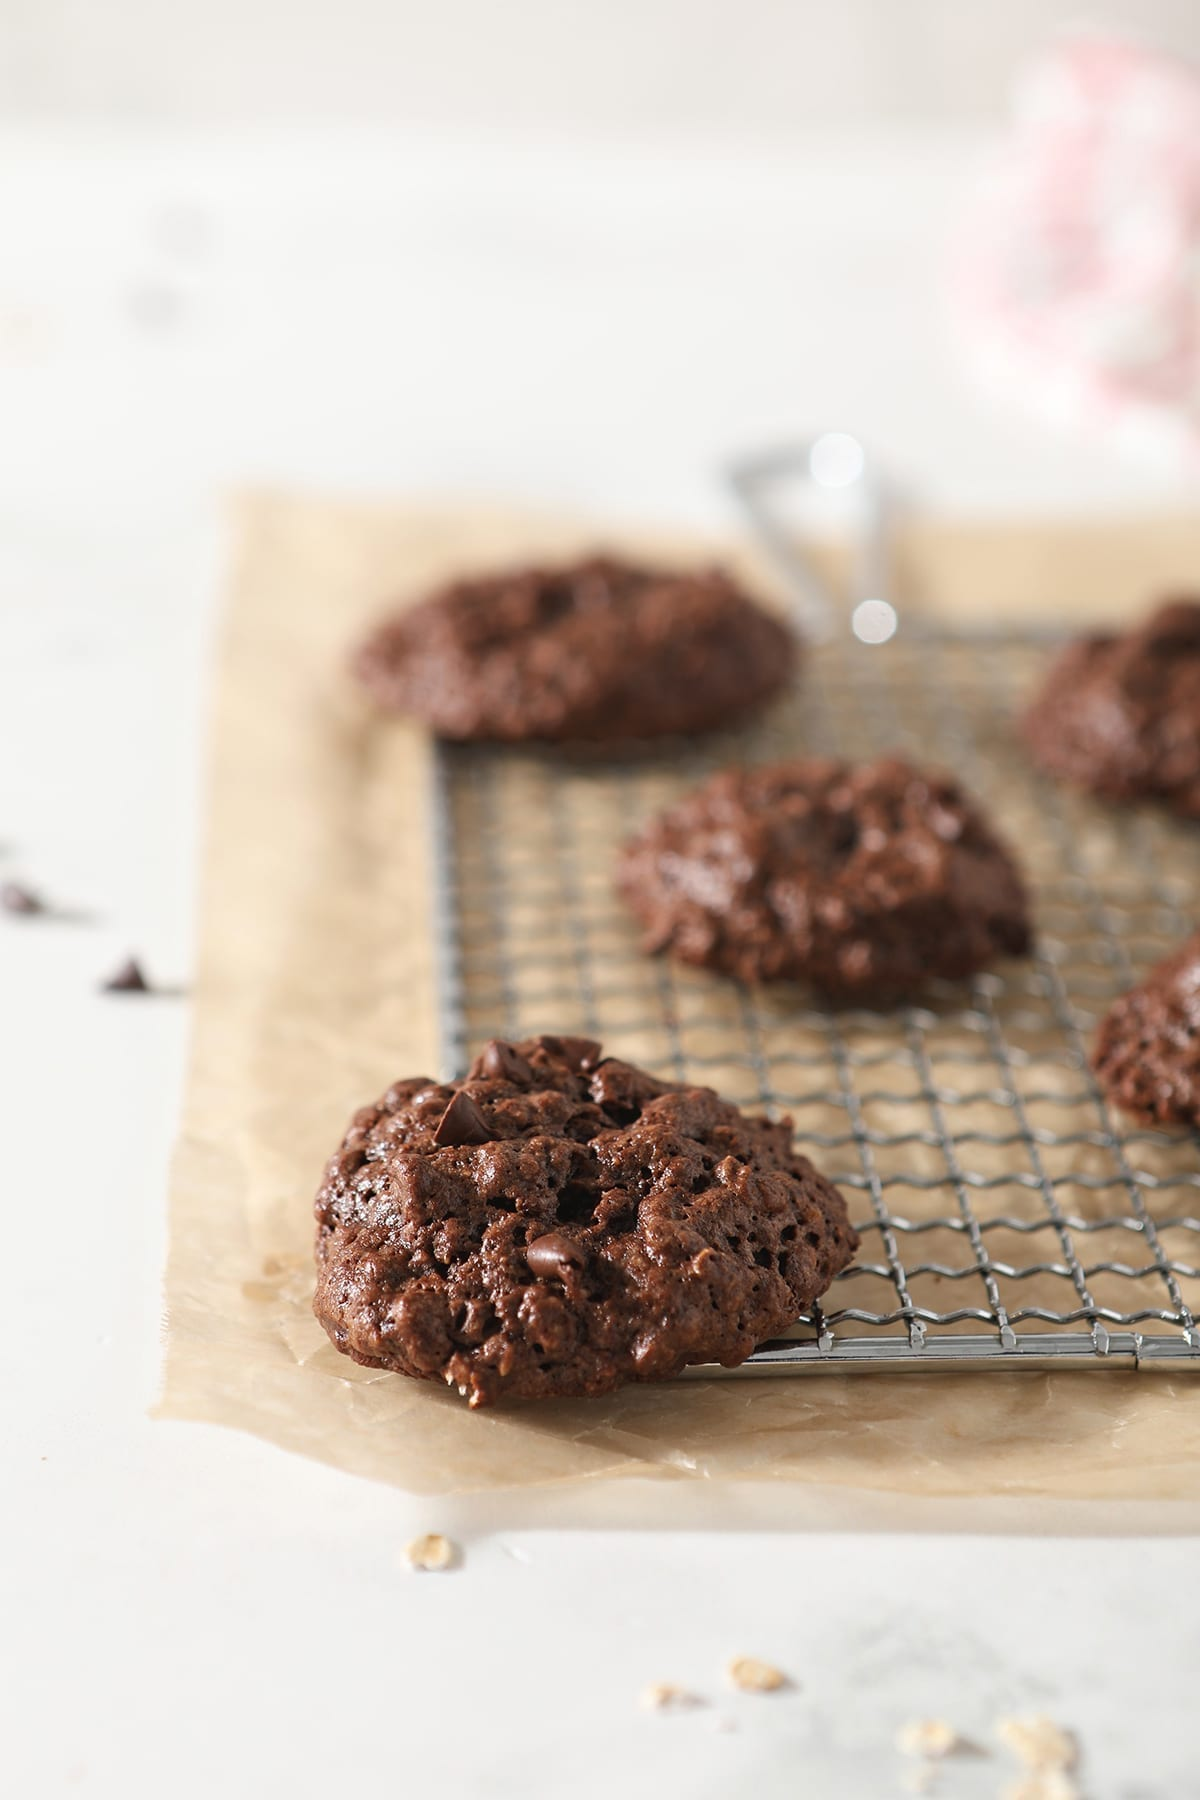 A few Gluten Free Chocolate Cookies sit on a metal grate on top of parchment paper